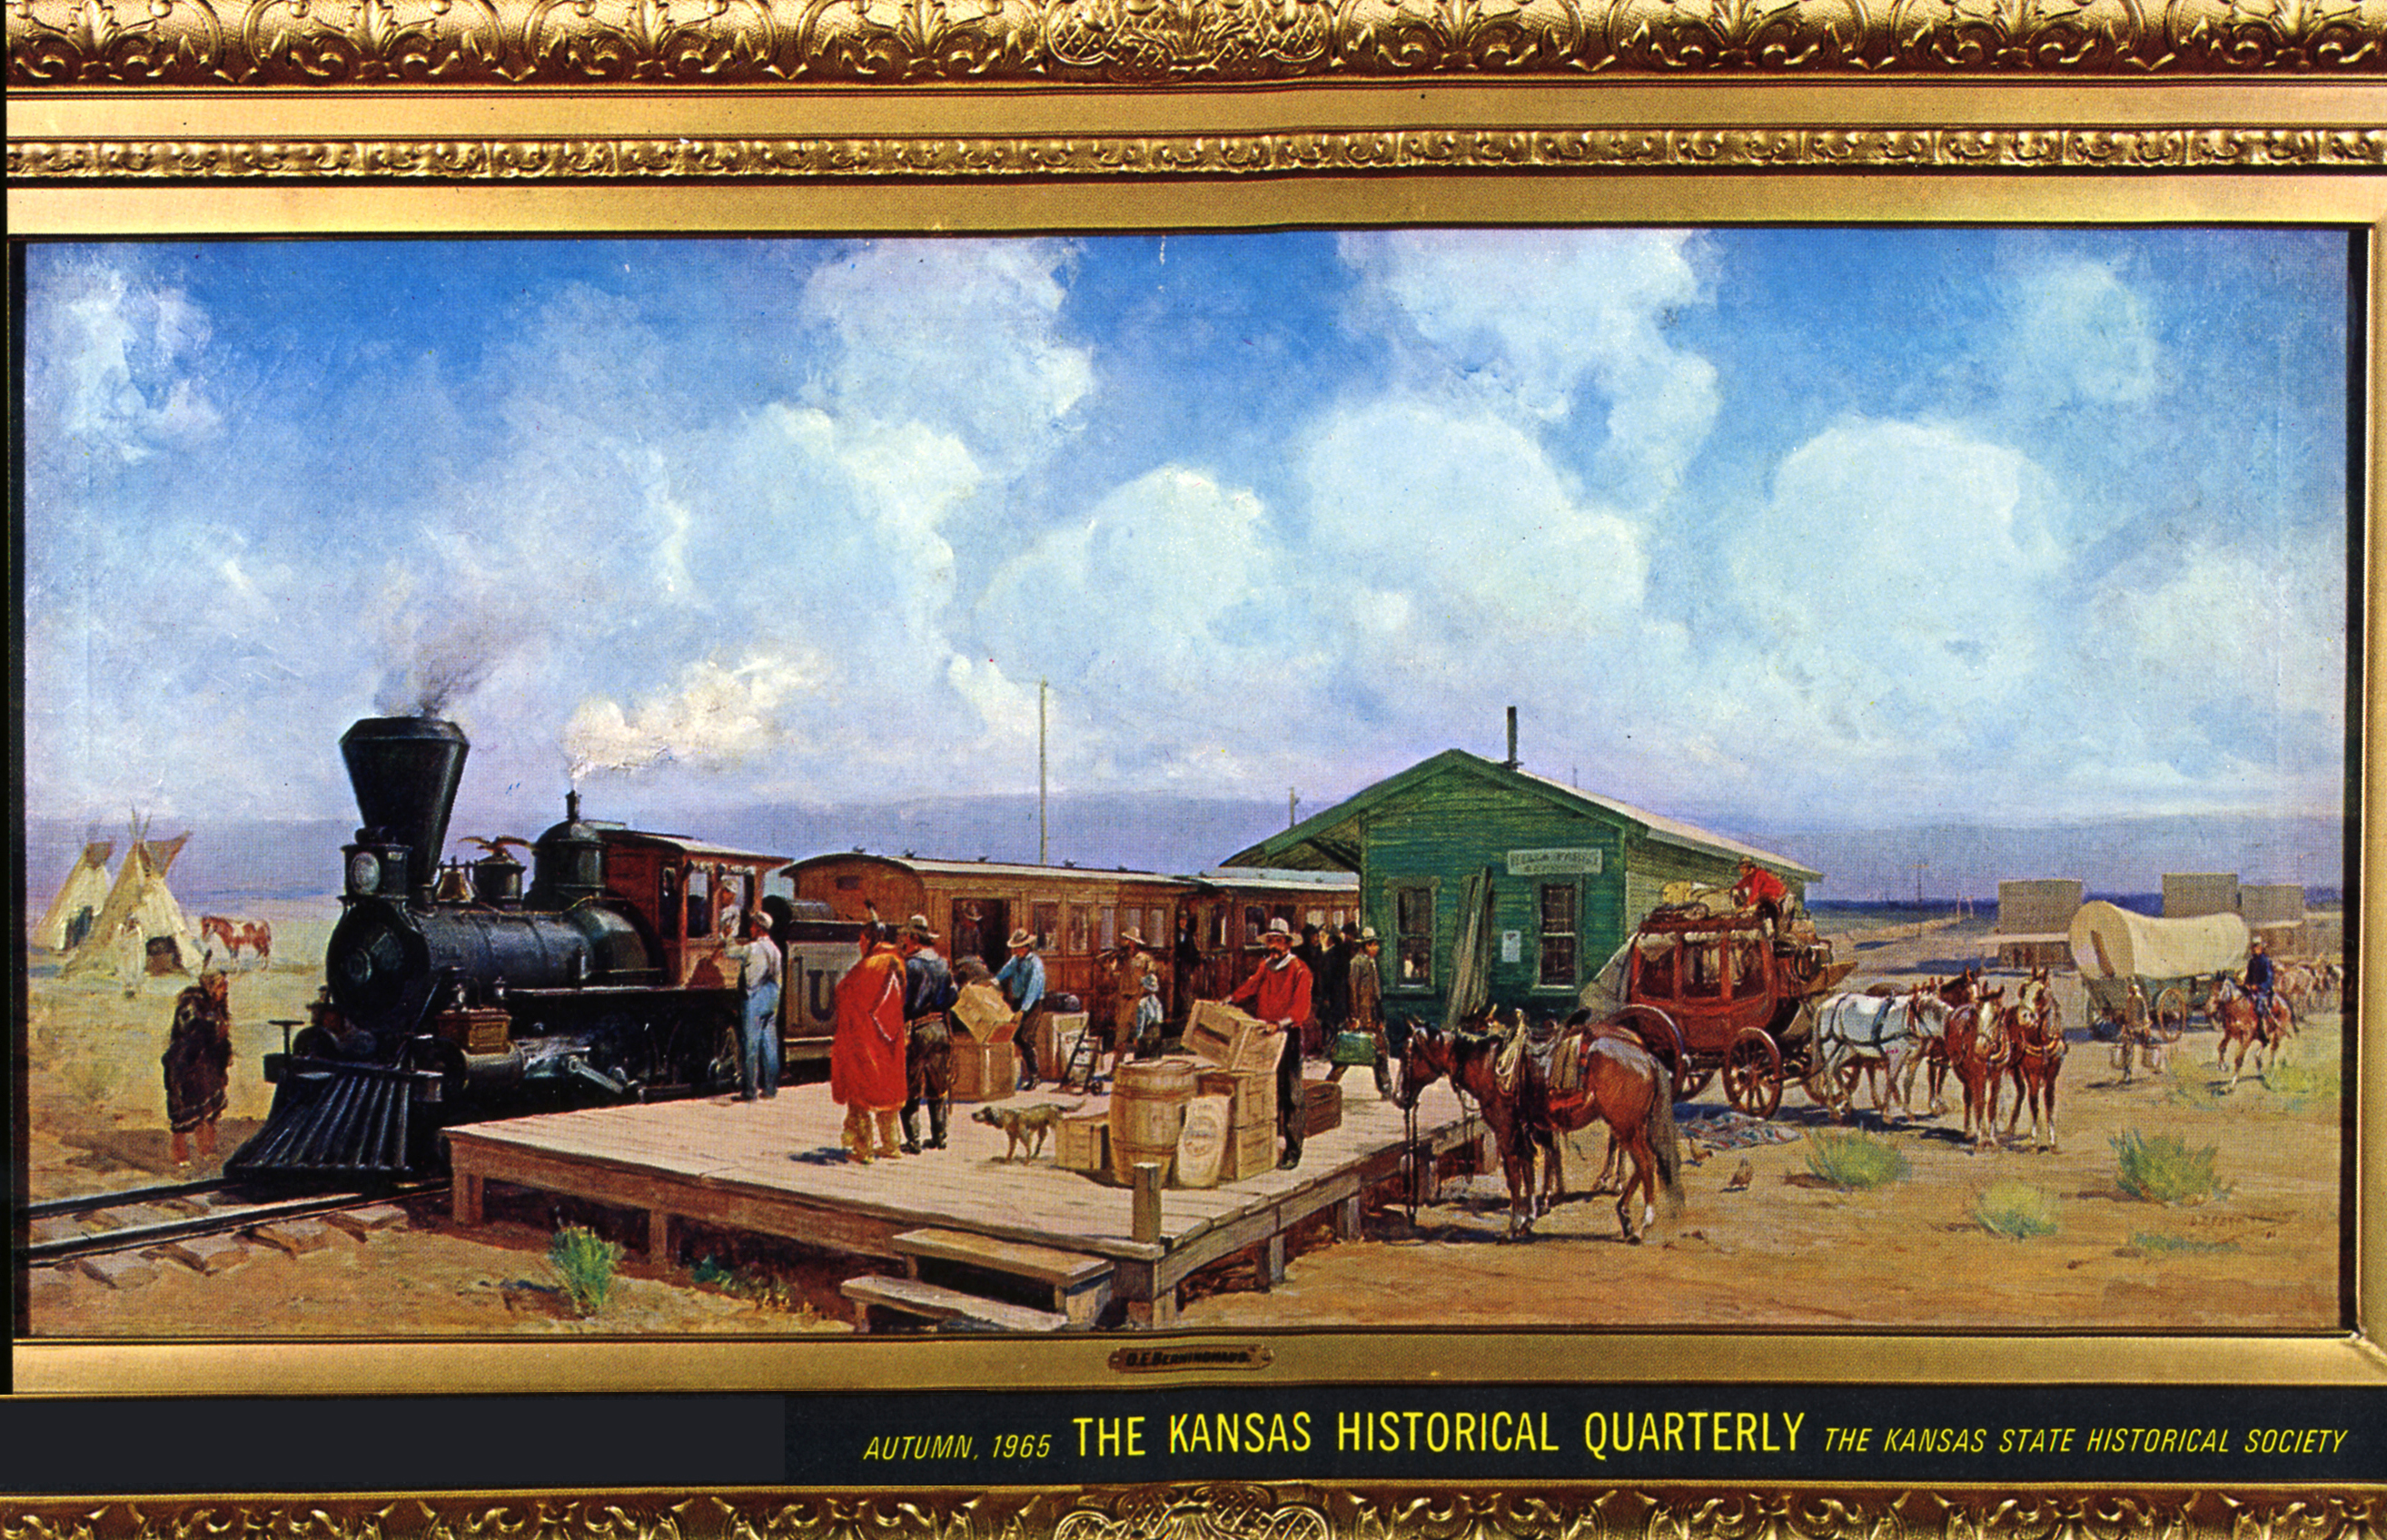 Kansas Historical Quarterly, Autumn 1965